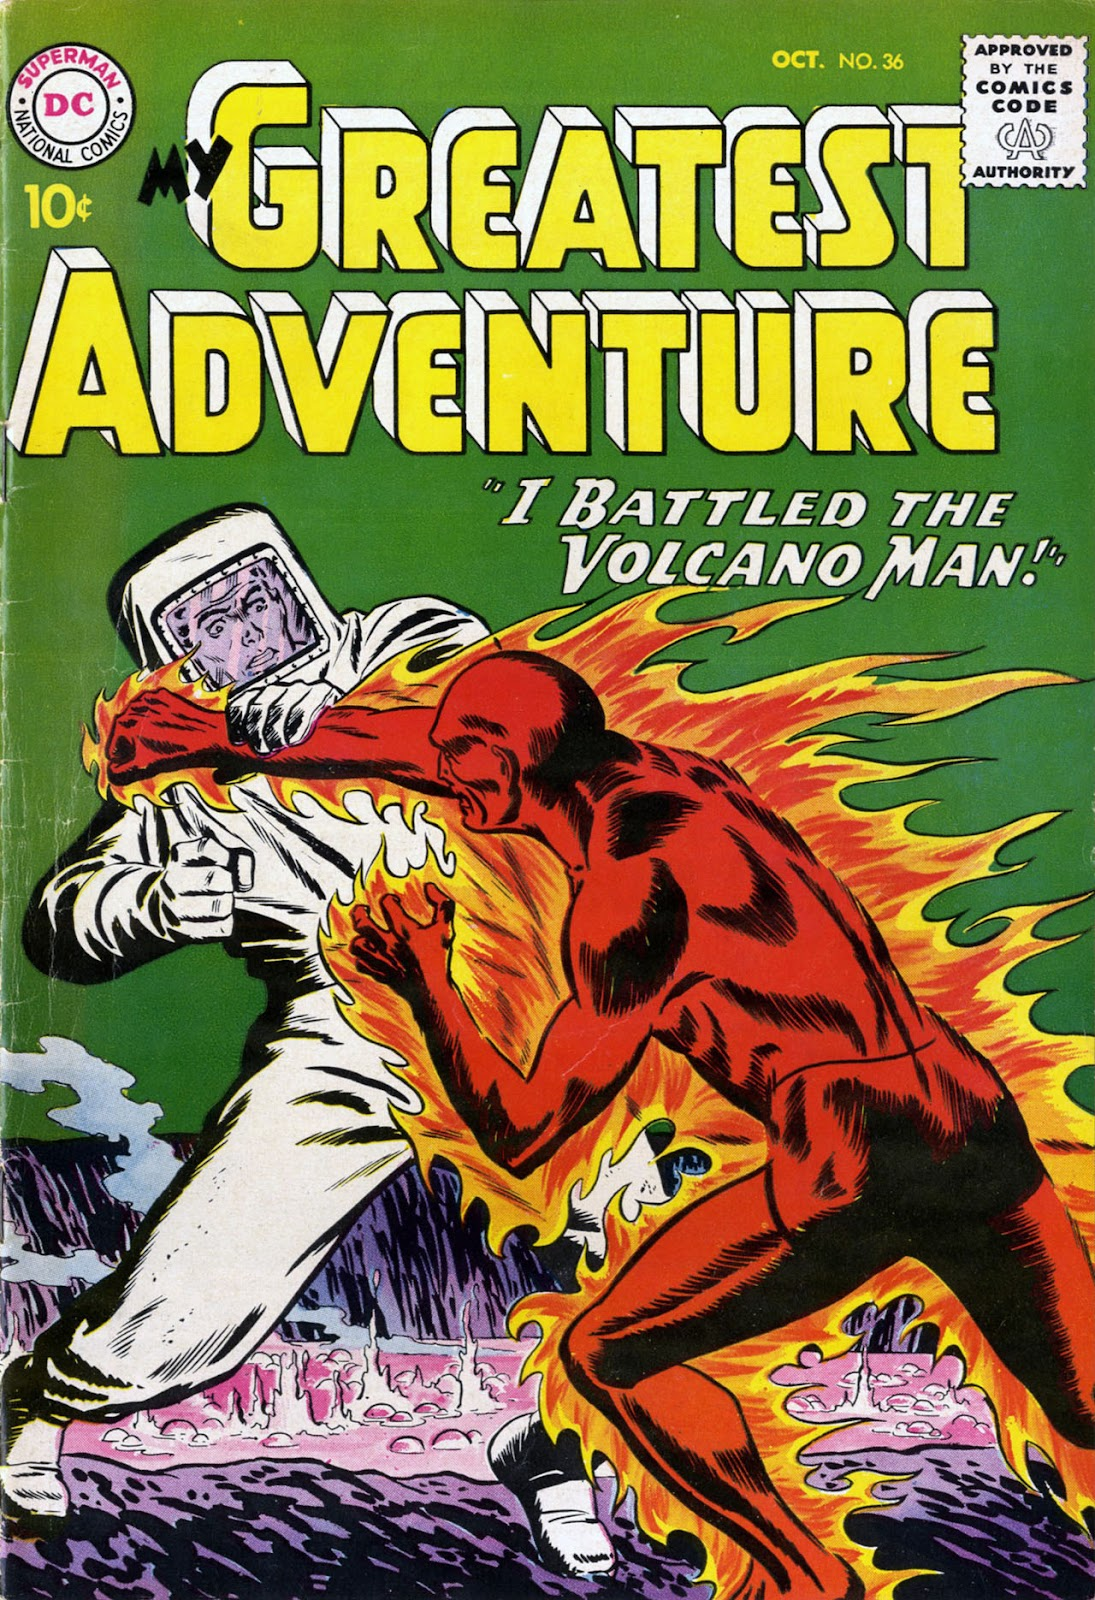 My Greatest Adventure (1955) issue 36 - Page 1